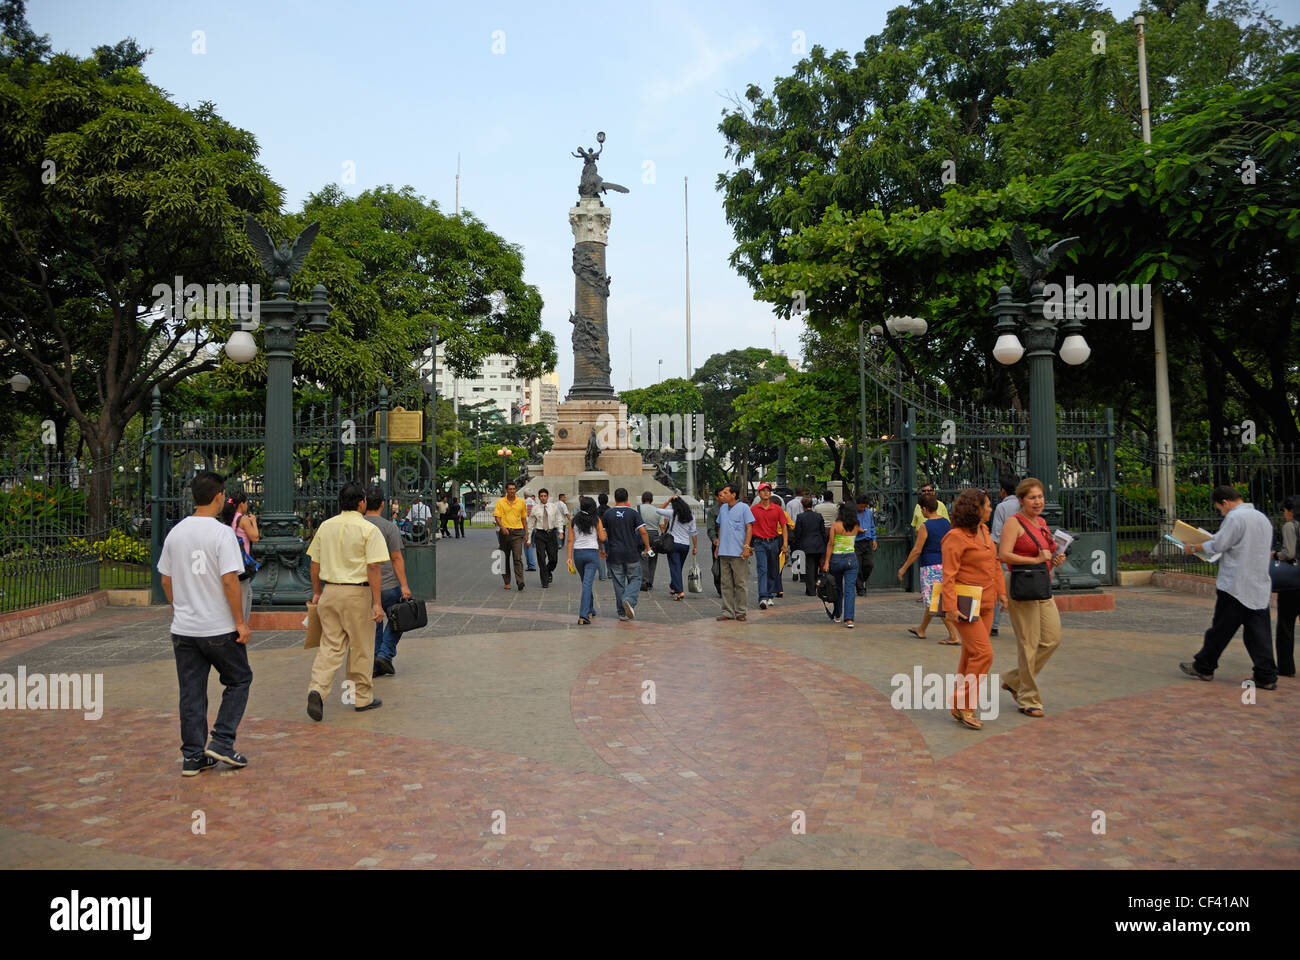 People at the gates of the Parque Centenario, Guayaquil, Ecuador - Stock Image